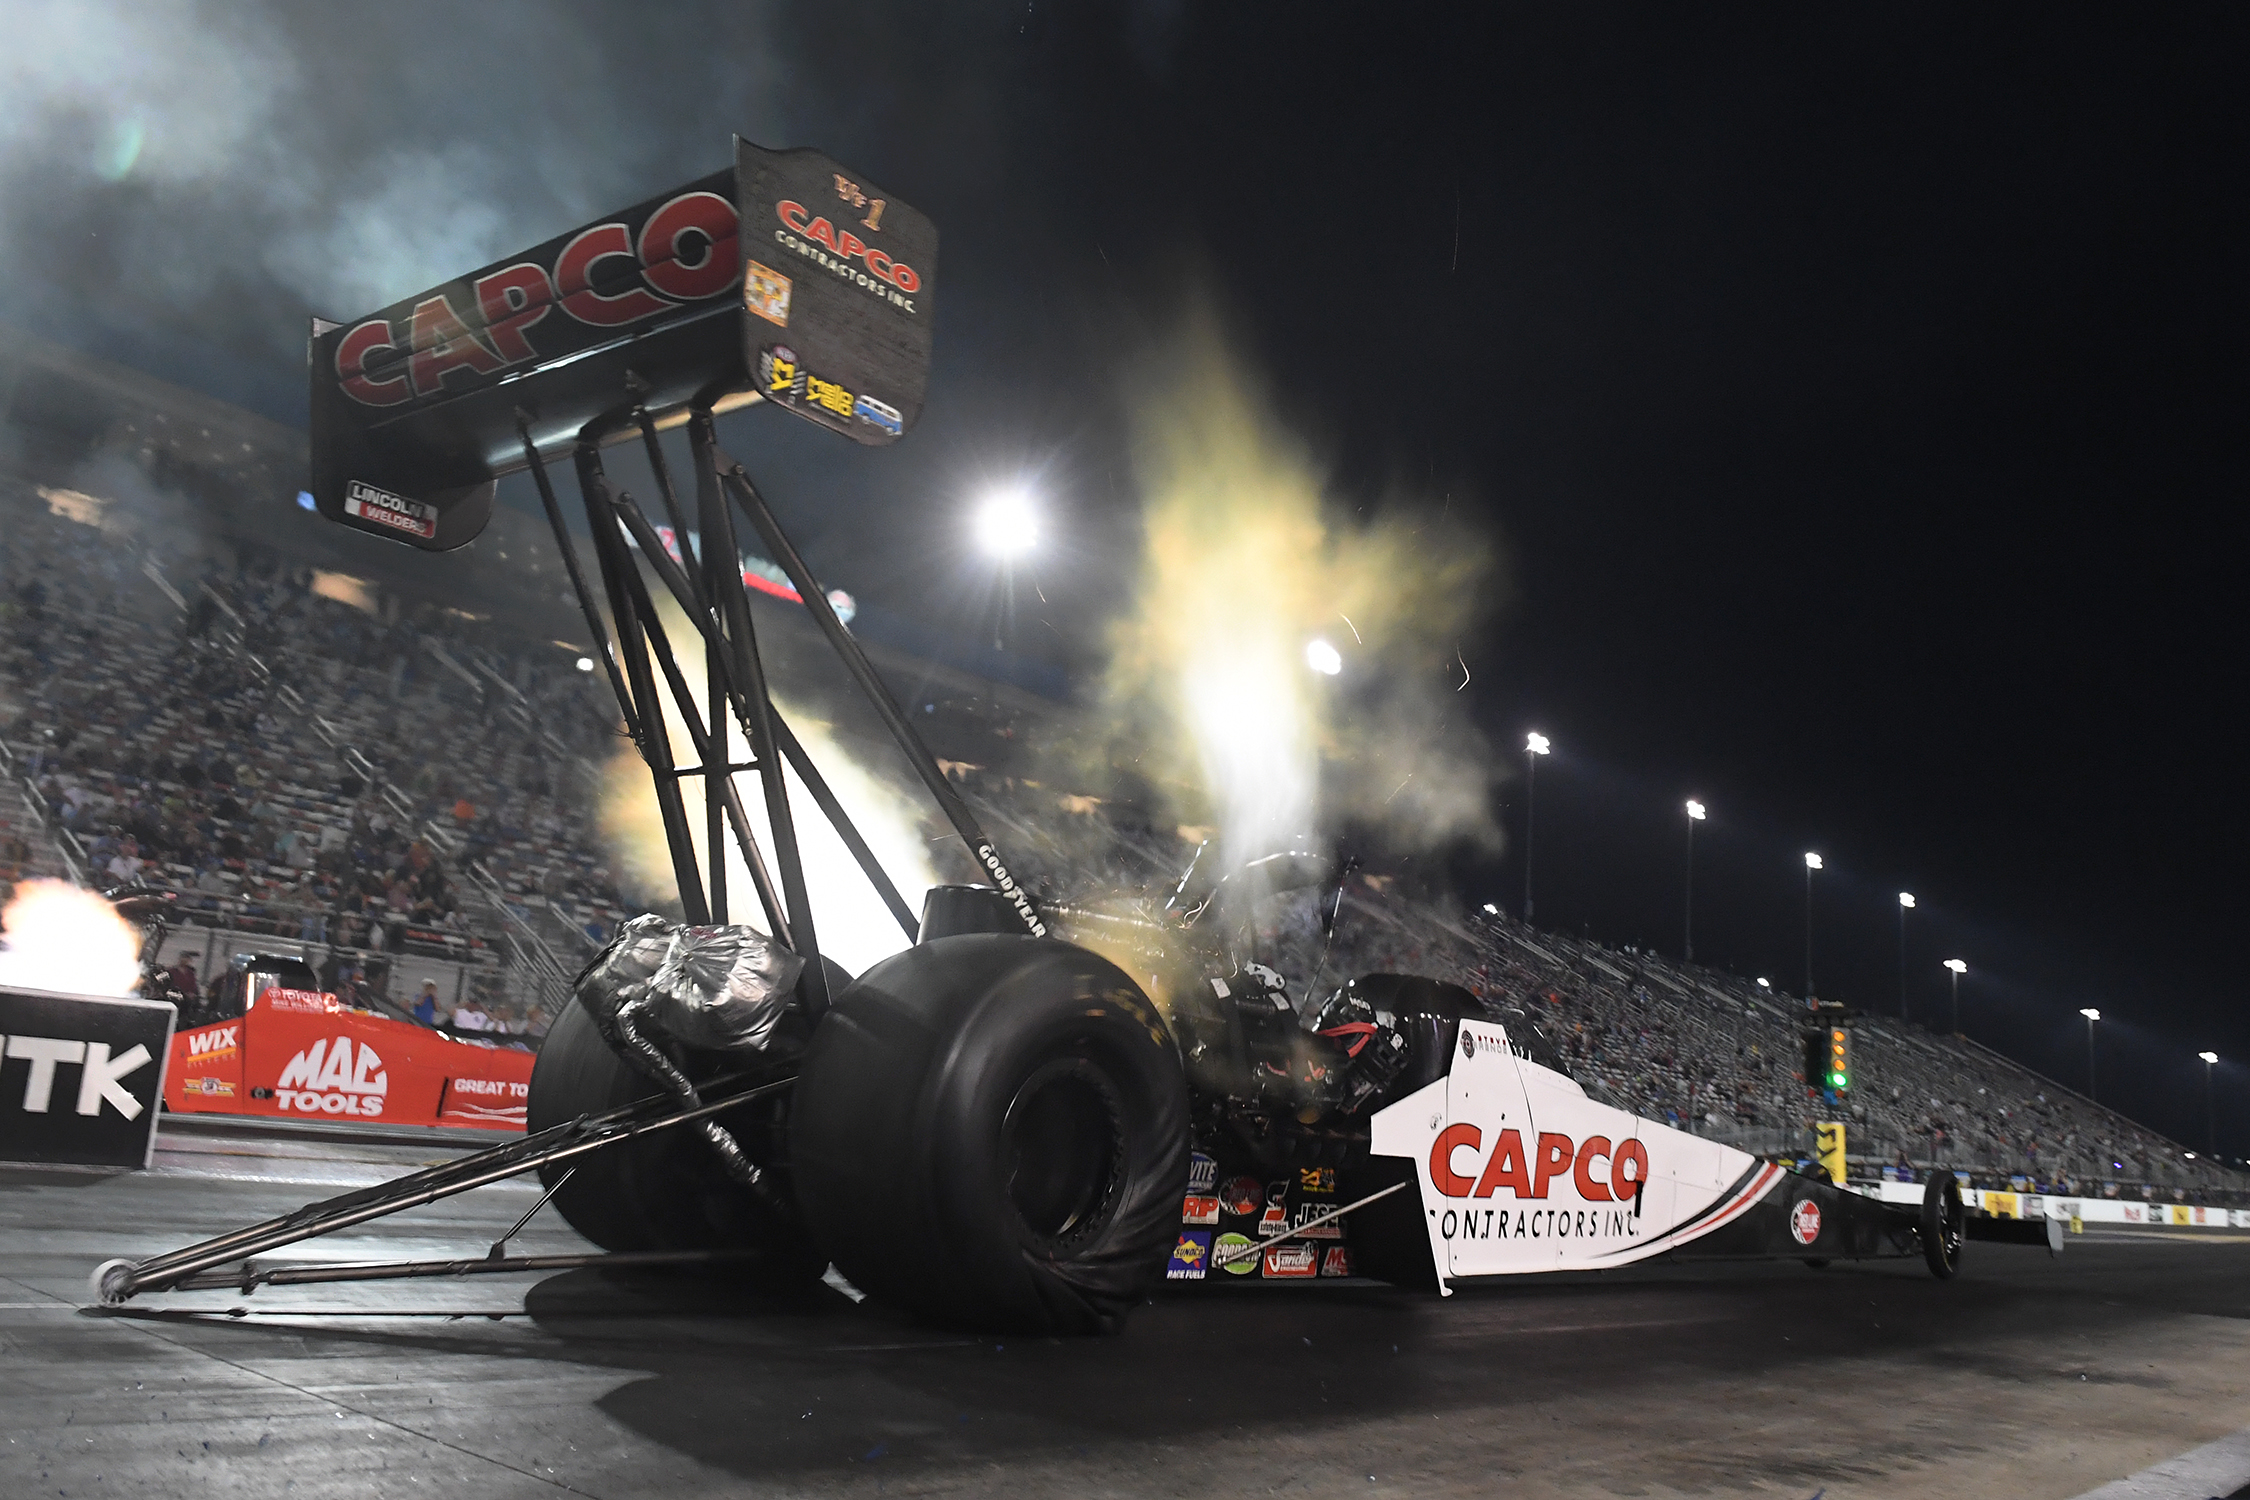 Capco Contractors Top Fuel Dragster pilot Steve Torrence is the provisional No. 1 qualifier in Top Fuel at the 2019 NHRA Carolina Nationals